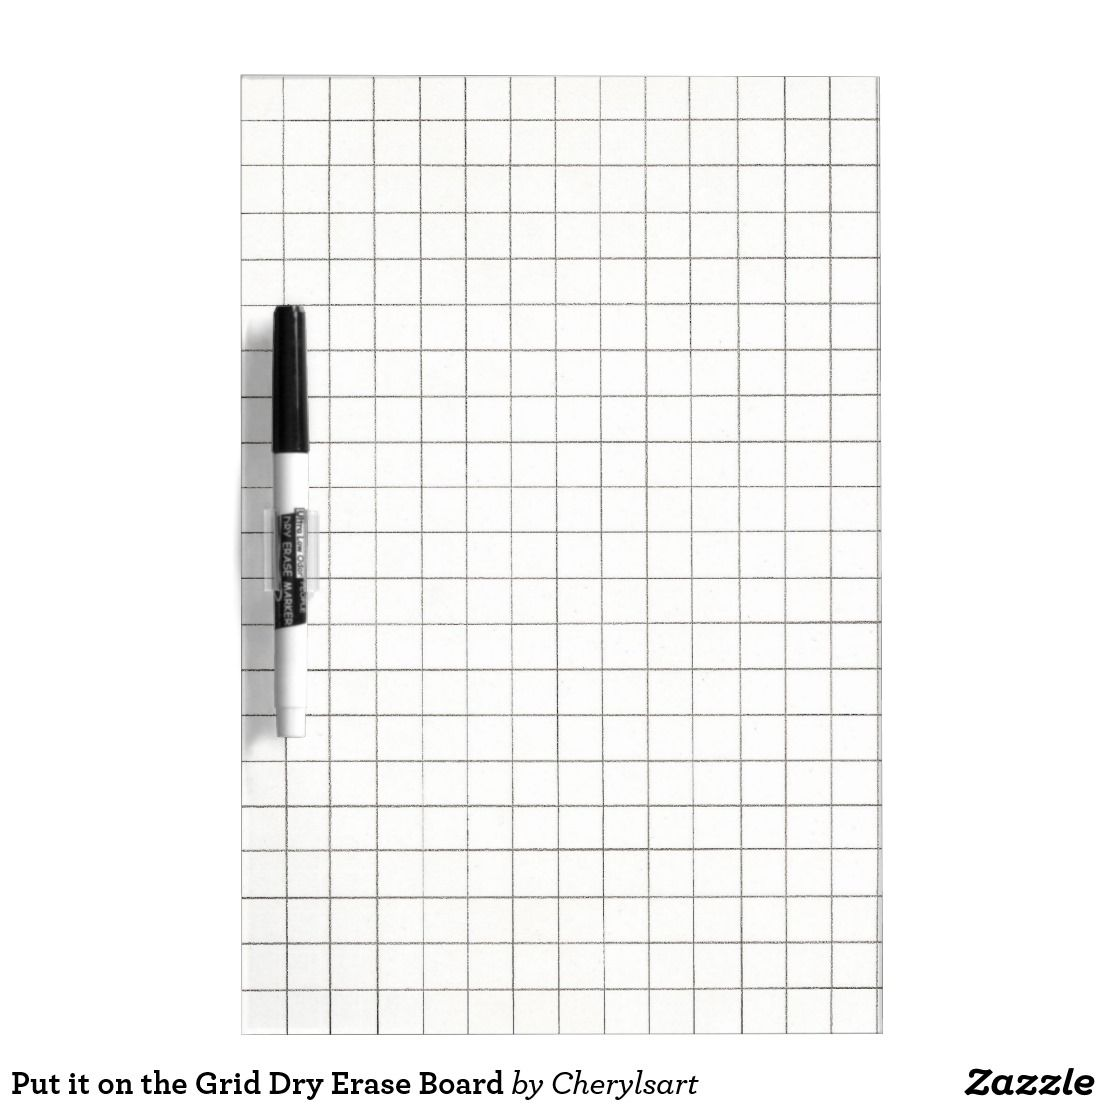 Put It On The Grid Dry Erase Board Zazzle Com In 2020 Dry Erase Board Dry Erase School Gifts